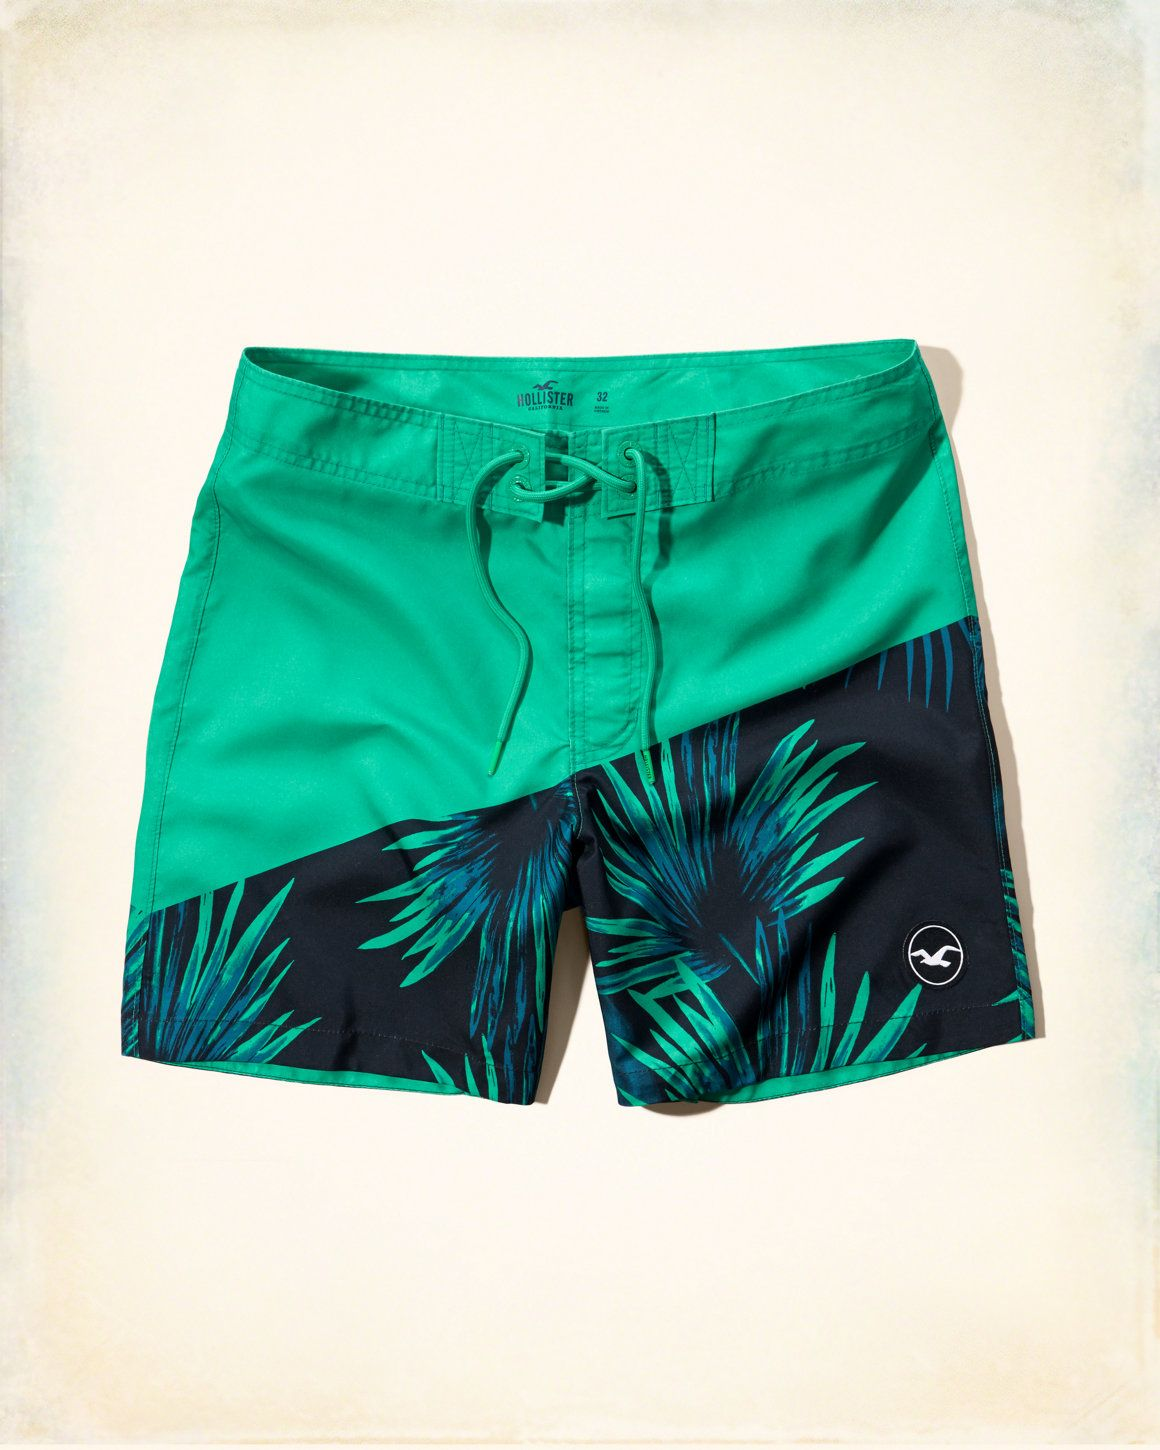 You Know And Good Navy Corpsman Up A Grunt Like Us Us Navy Mens Swim Trunks Bathing Suit Beach Shorts